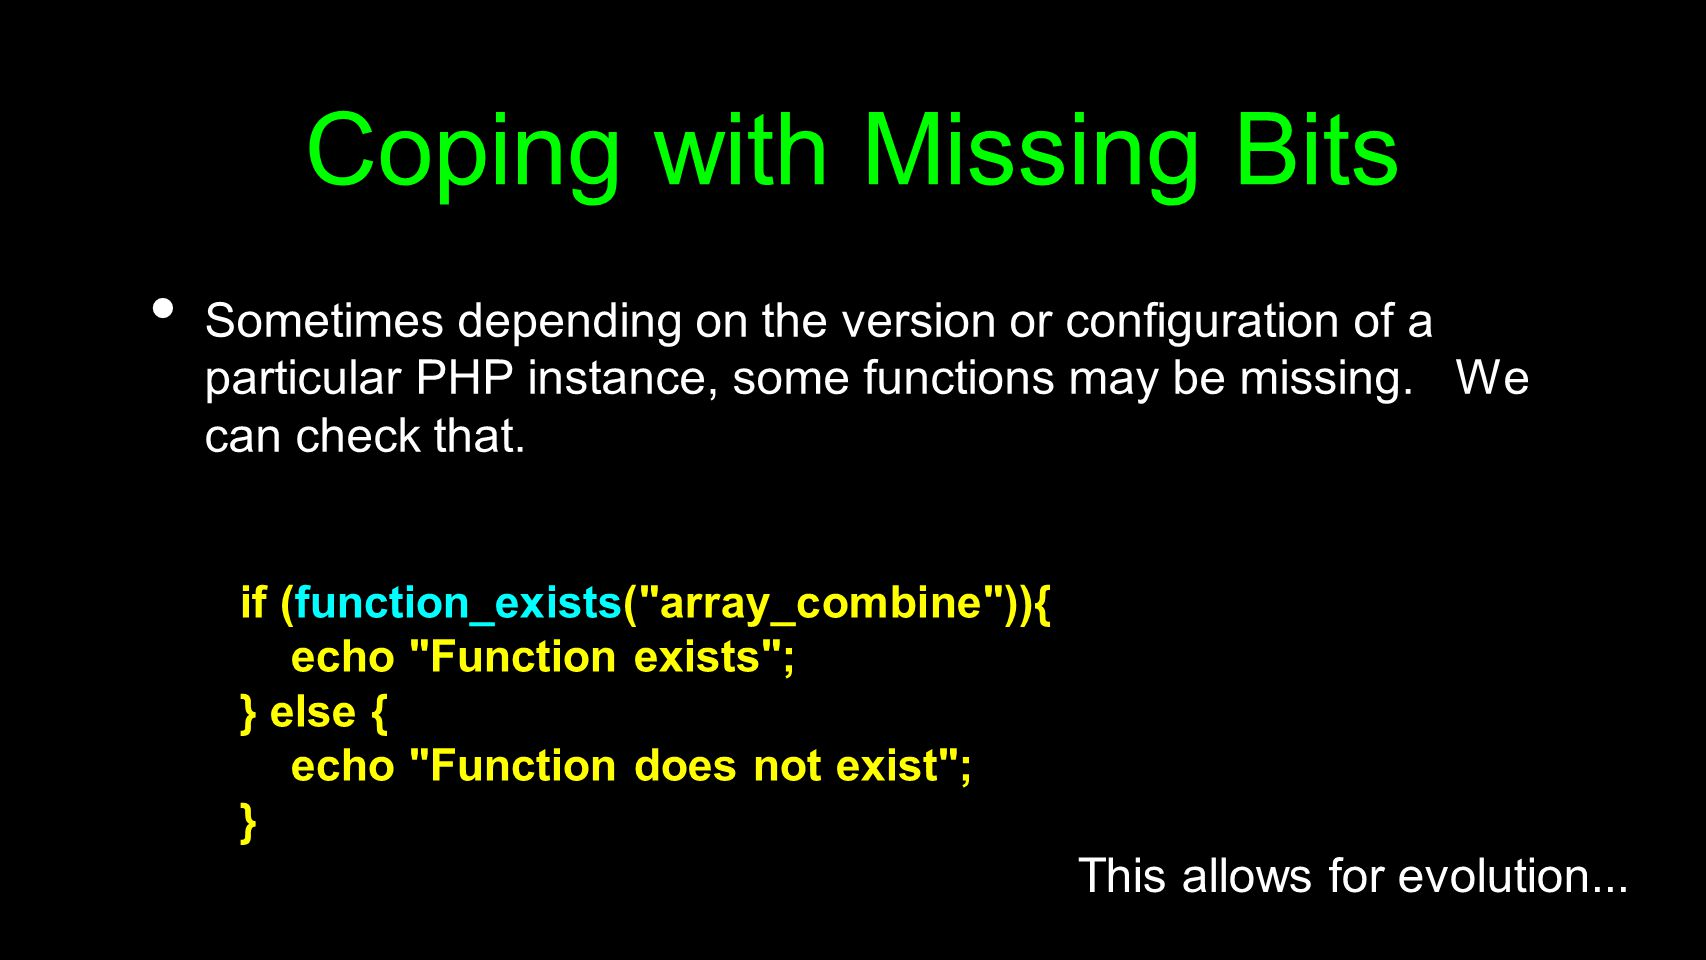 Coping with Missing Bits Sometimes depending on the version or configuration of a particular PHP instance, some functions may be missing. We can check